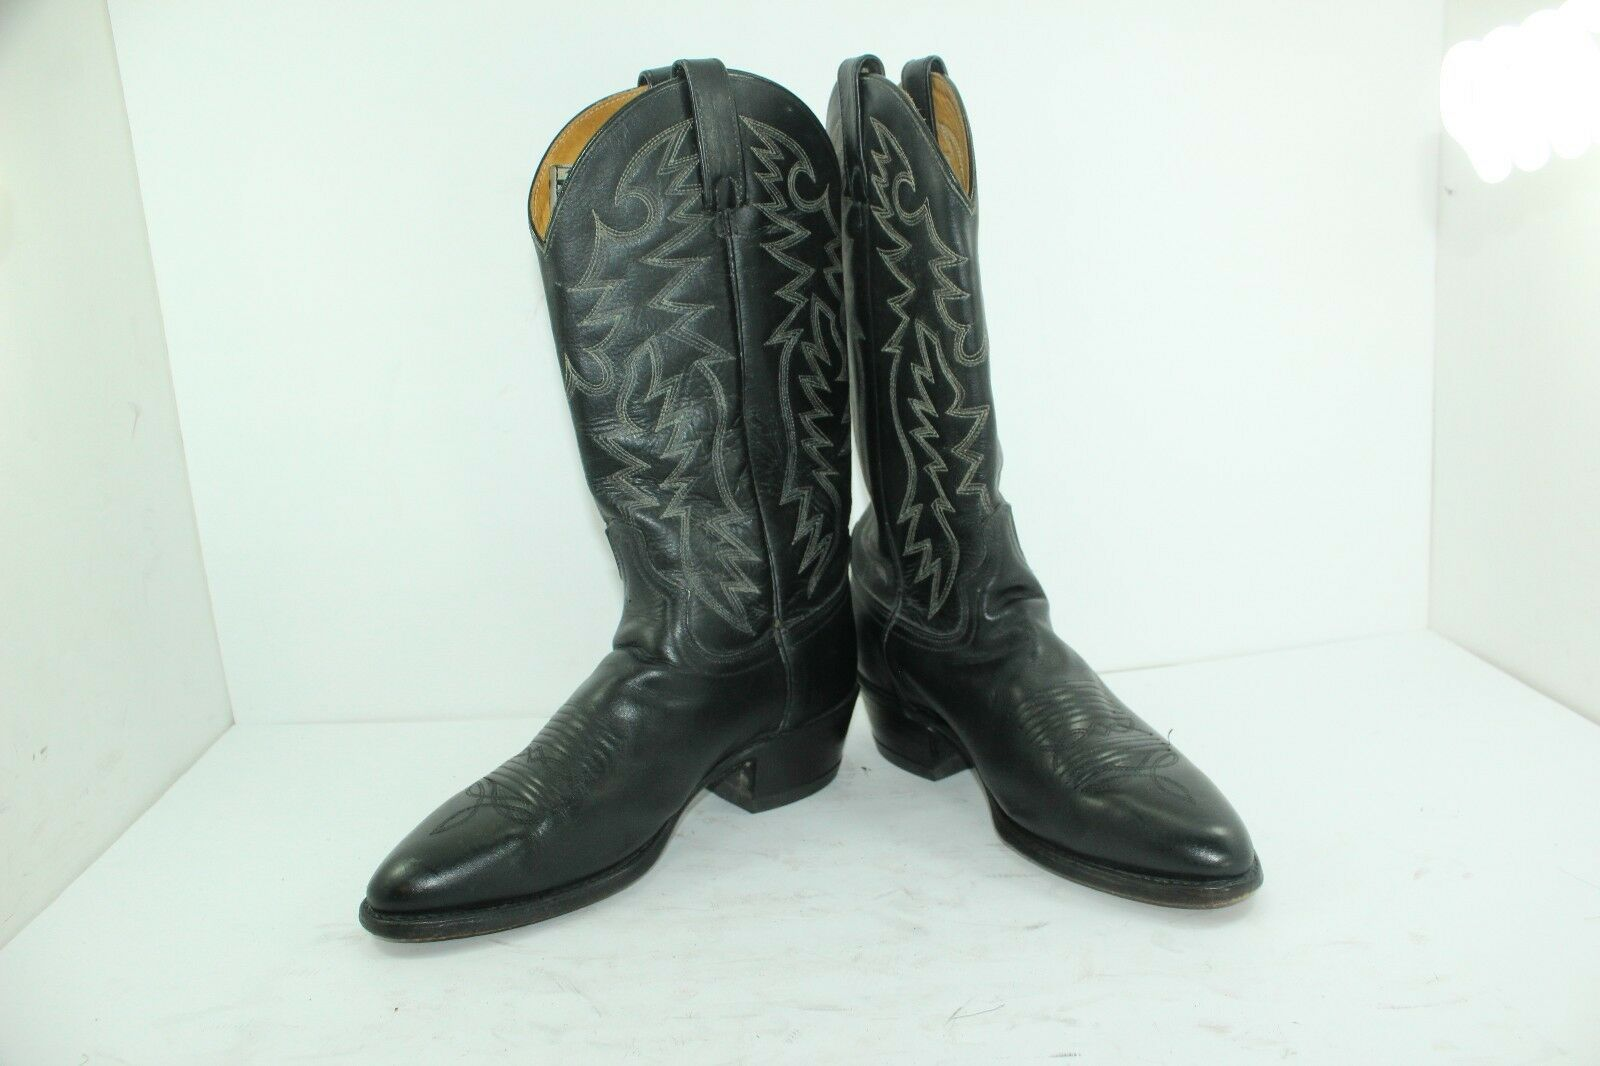 2ed1b1cf7ca GREAT WESTERN BOOTS SIZE 8 8 8 .5 D BLACK LEATHER b95e34 - golf ...